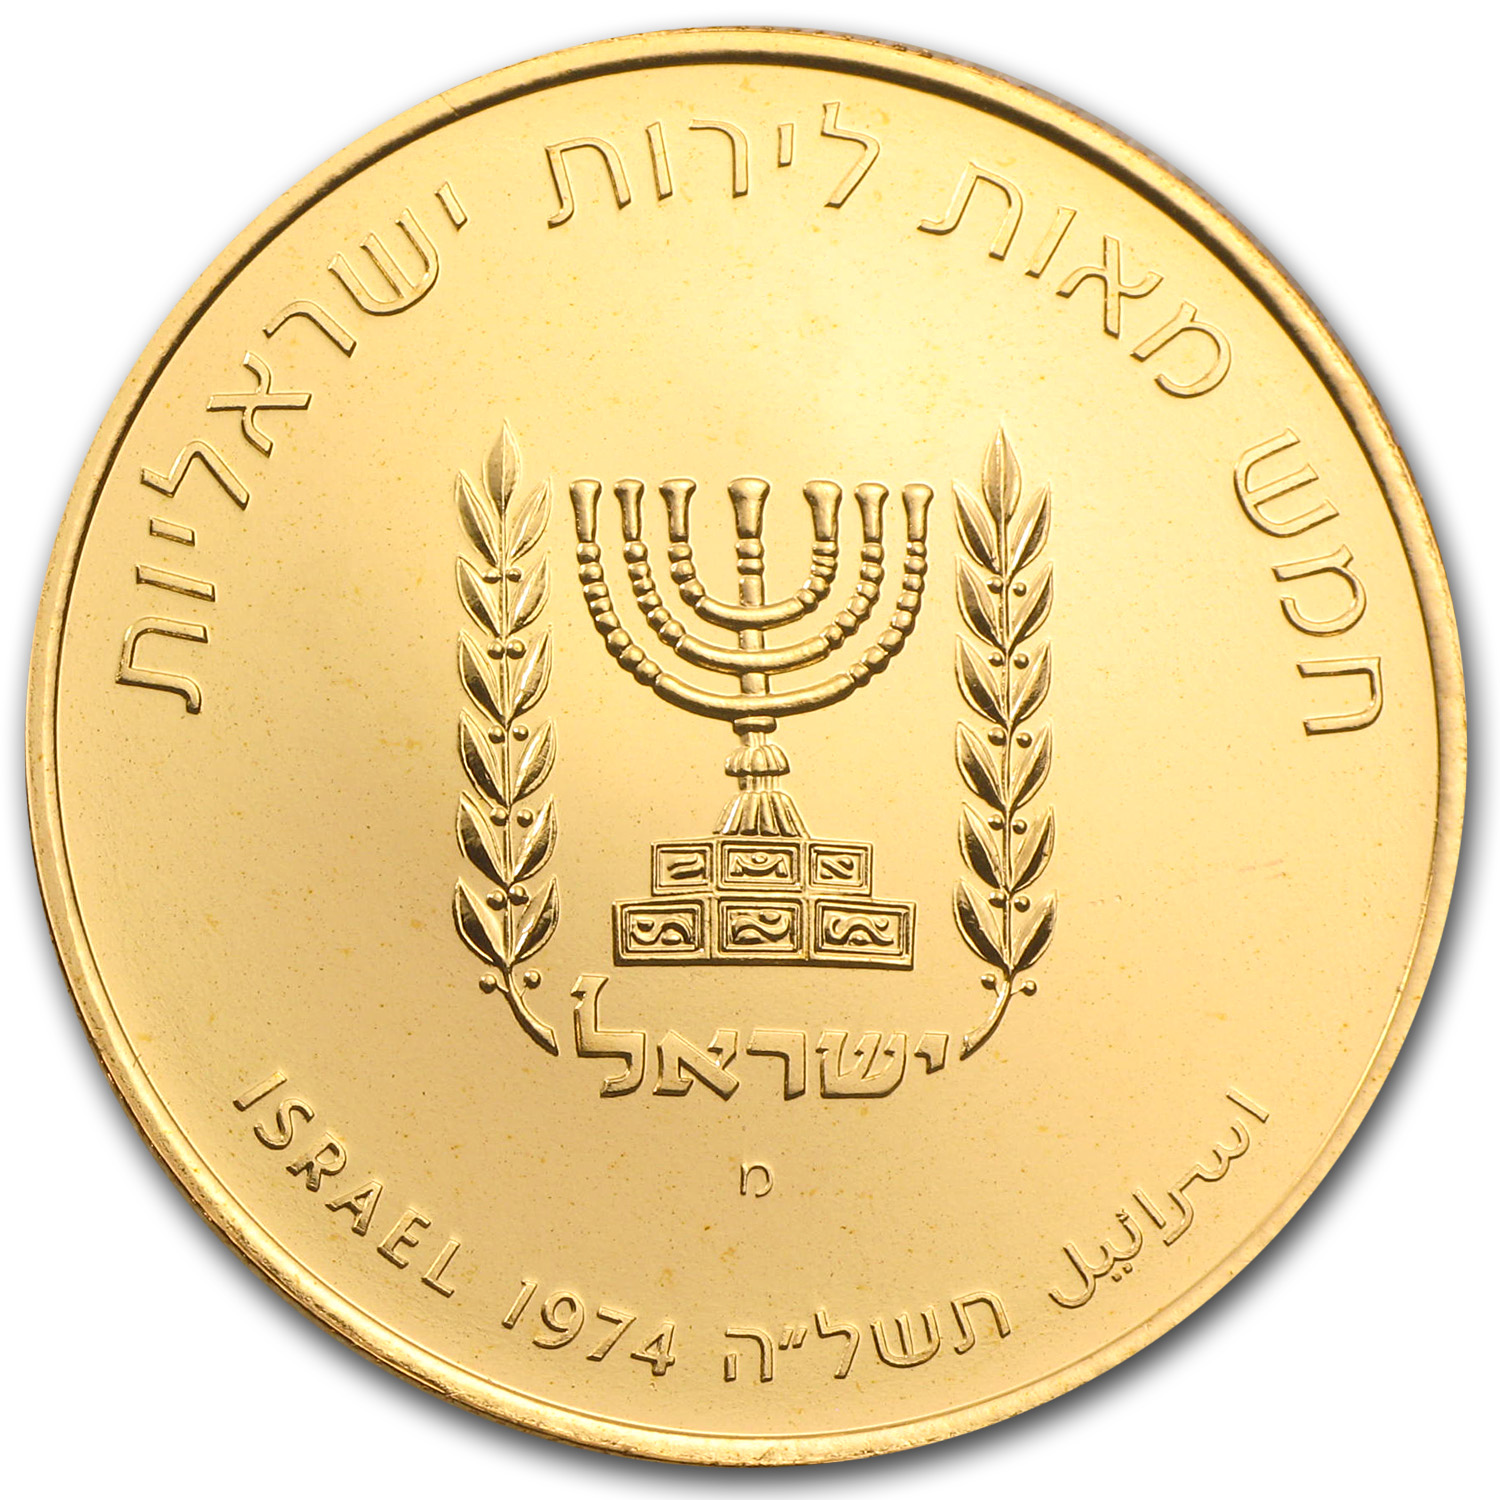 1974 Israel Gold 500 Lirot David Ben-Gurion Proof